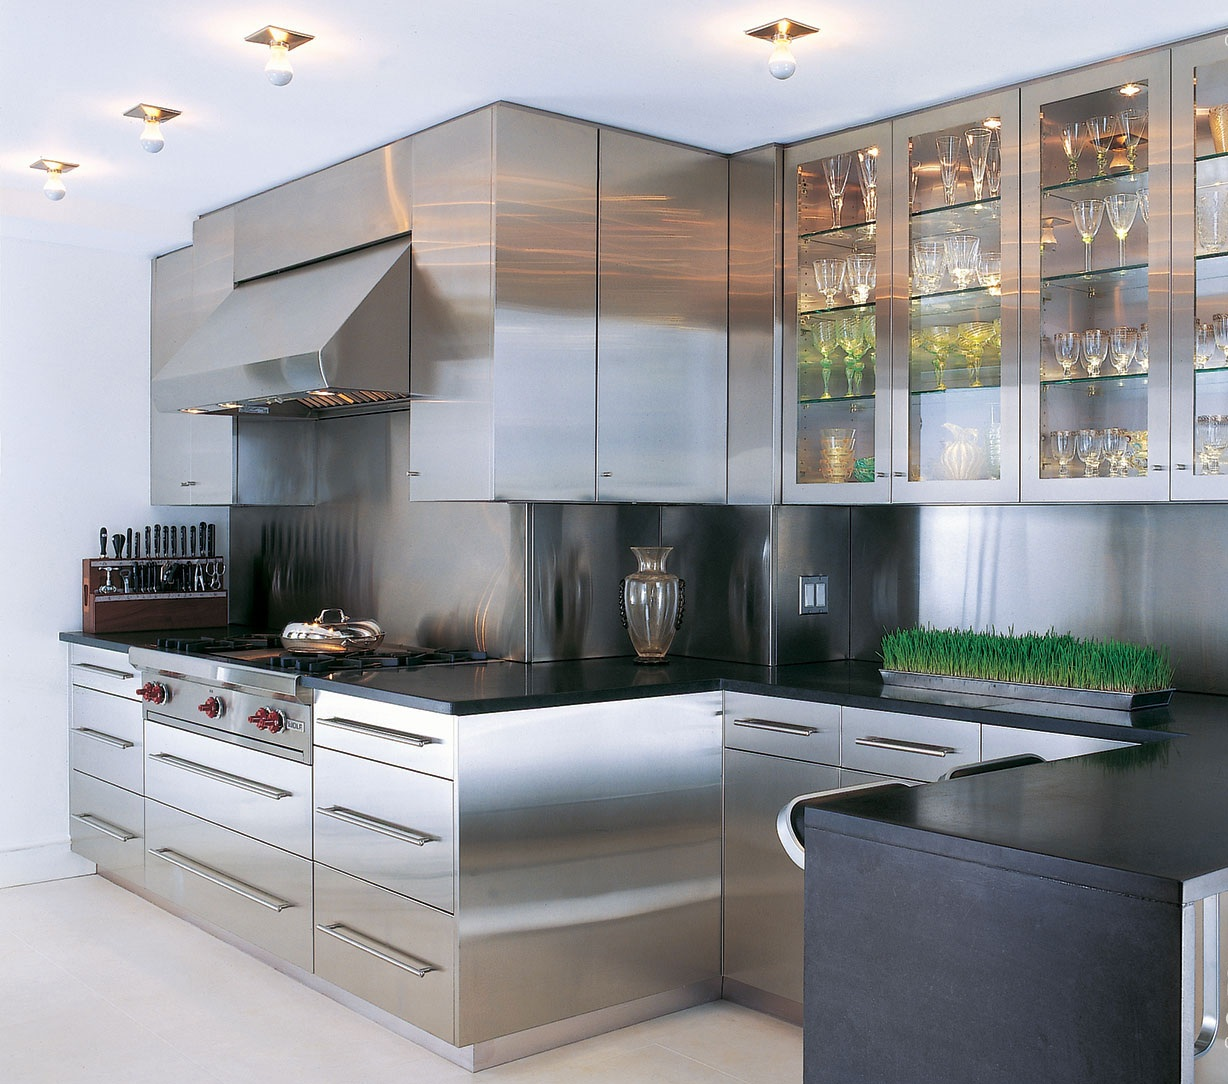 Kitchen Wall Accessories Stainless Steel: Stainless Steel Kitchen Cabinets